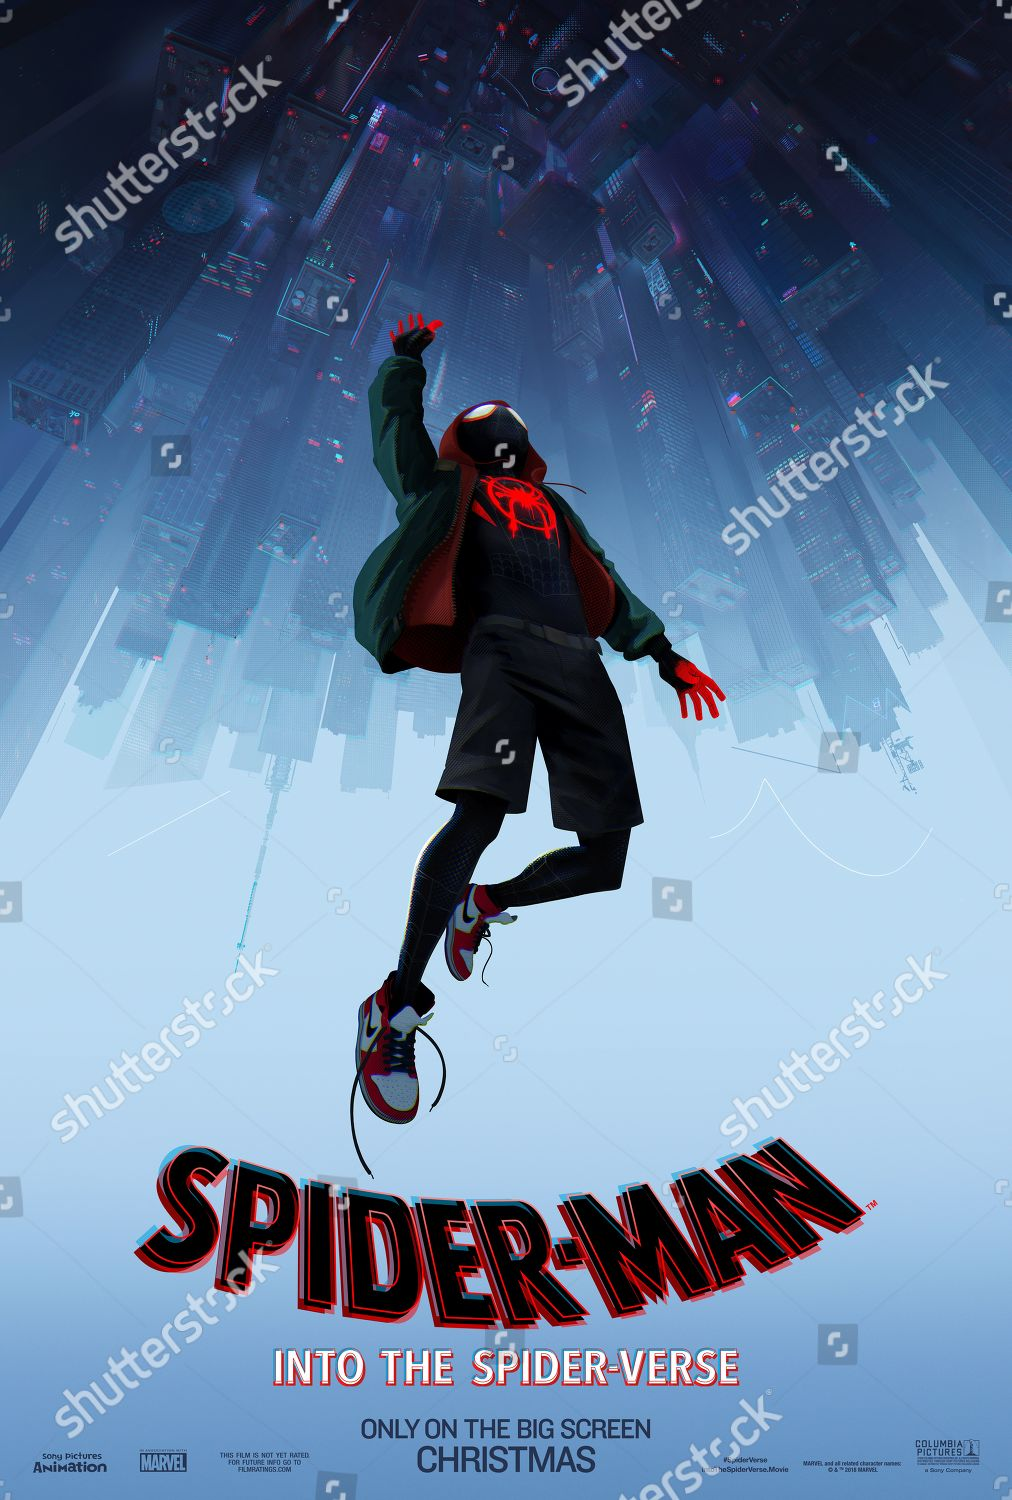 Spiderman Into Spiderverse 2018 Poster Art Miles Editorial Stock Photo Stock Image Shutterstock